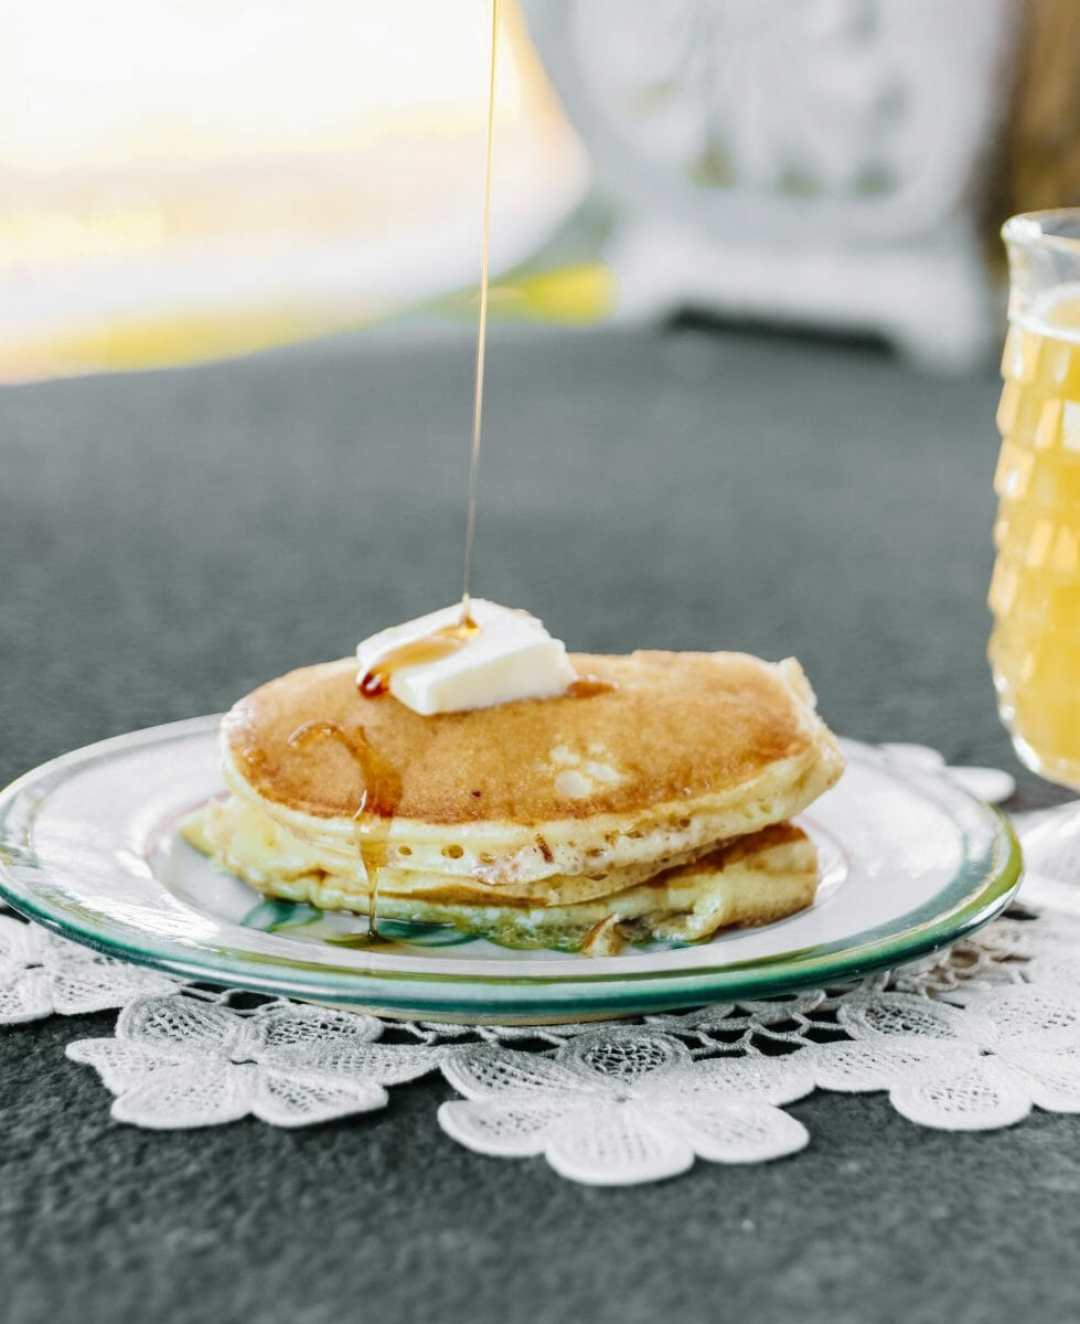 The Best Buttermilk Pancakes: Jude's Kentucky Buttermilk Pancakes by JC Phelps of JCP Eats, a Kentucky-based food, travel, and lifestyle blog